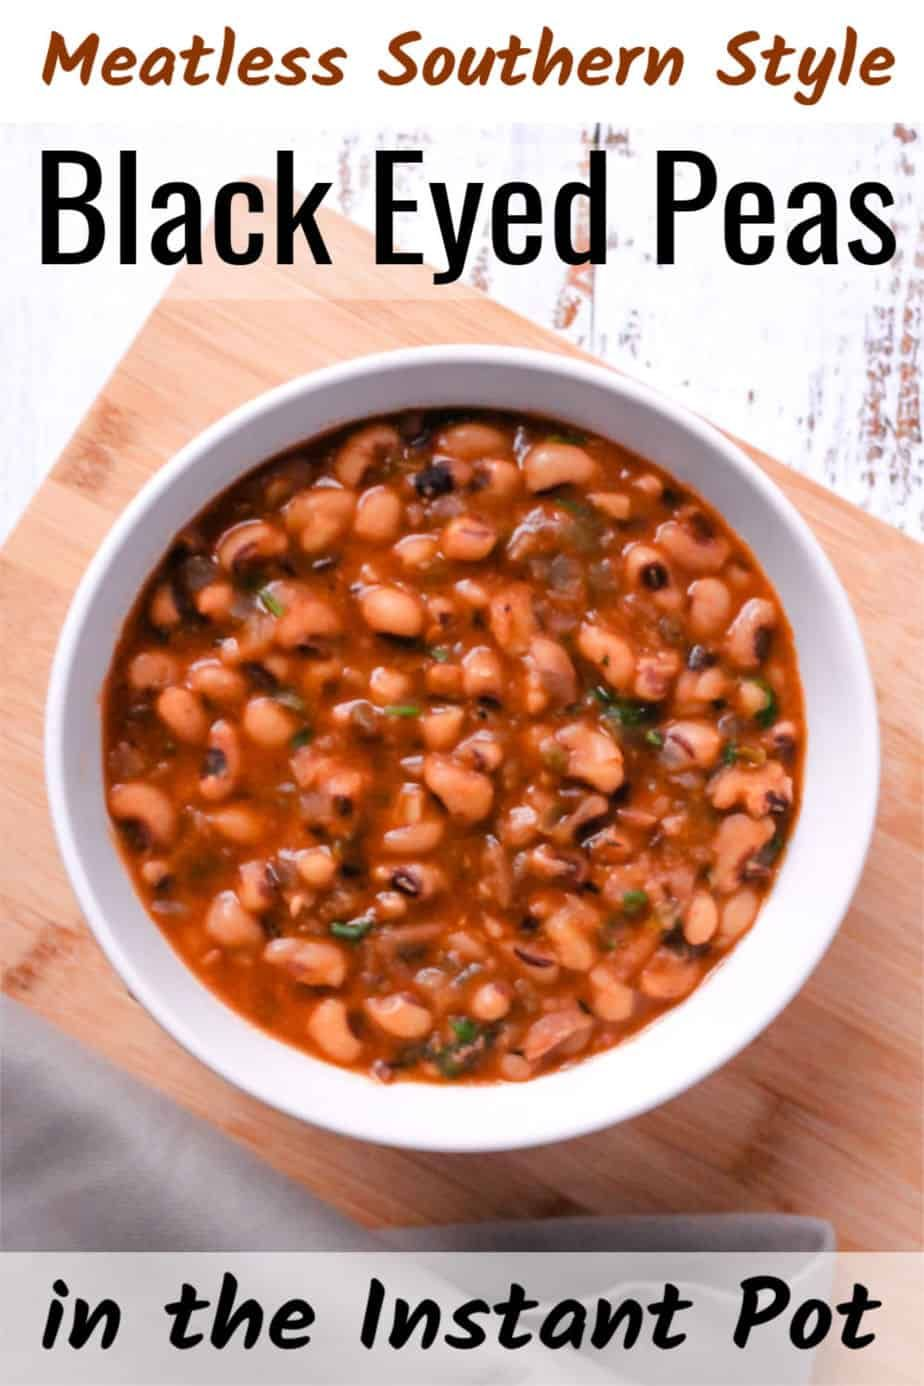 These vegetarian Southernstyle Instant Pot black eyed